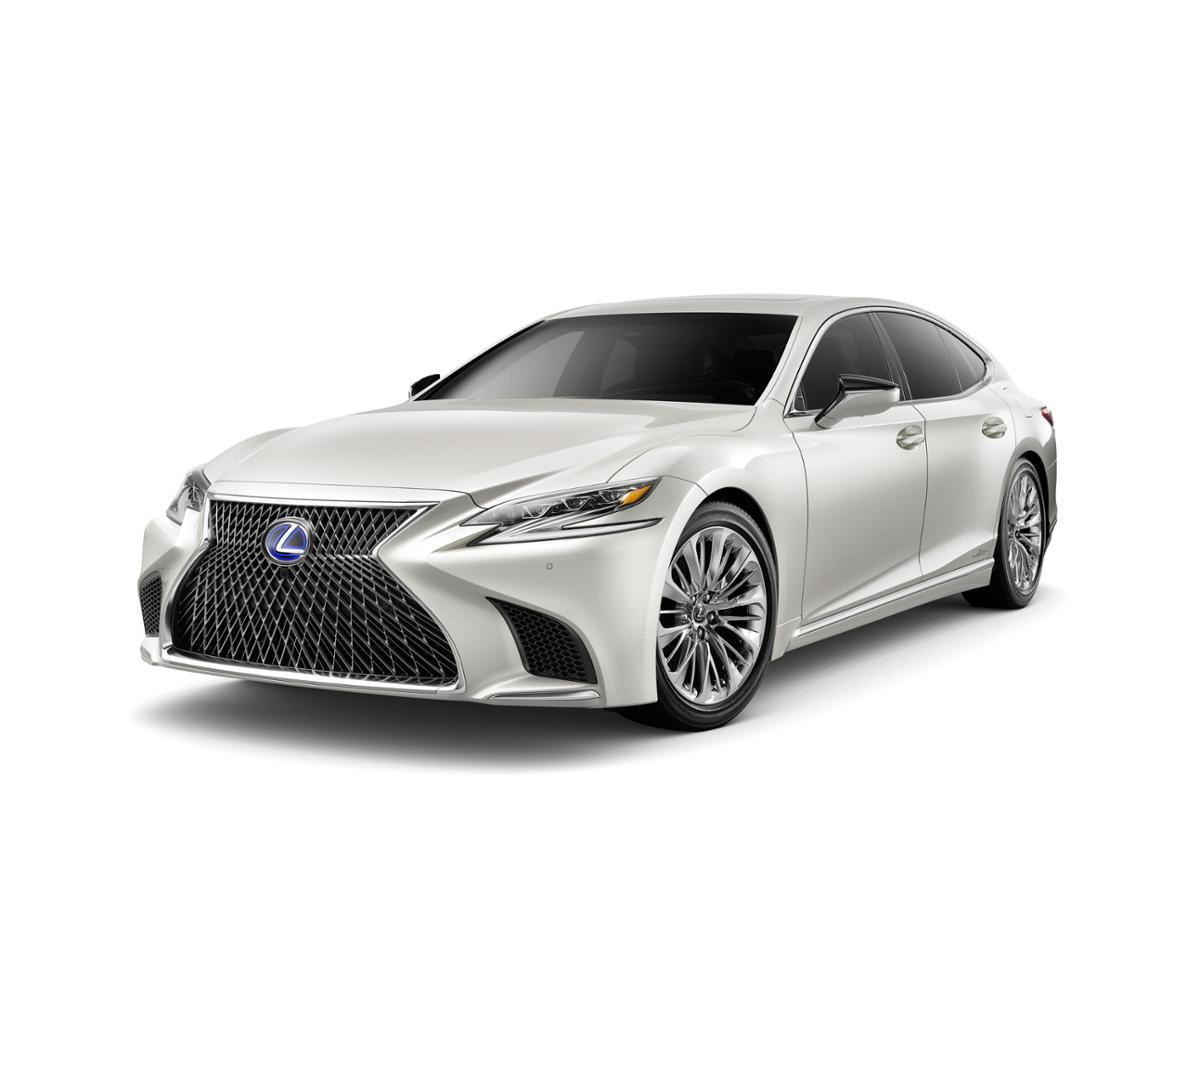 2019 Lexus LS 500h Vehicle Photo in Santa Monica, CA 90404